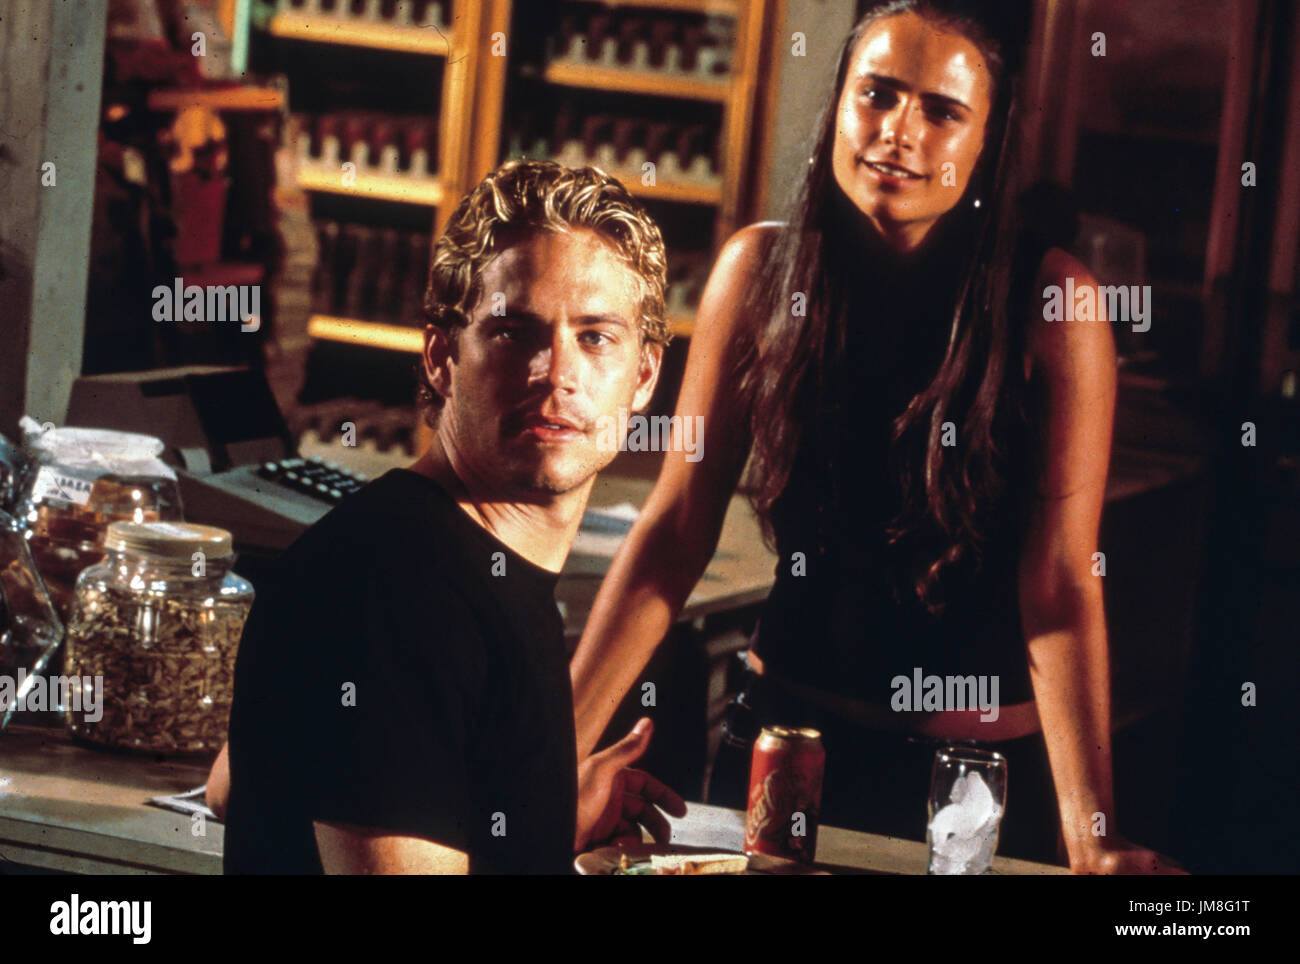 fast and the furious, paul walker, jordanna brewster, 2001 - Stock Image